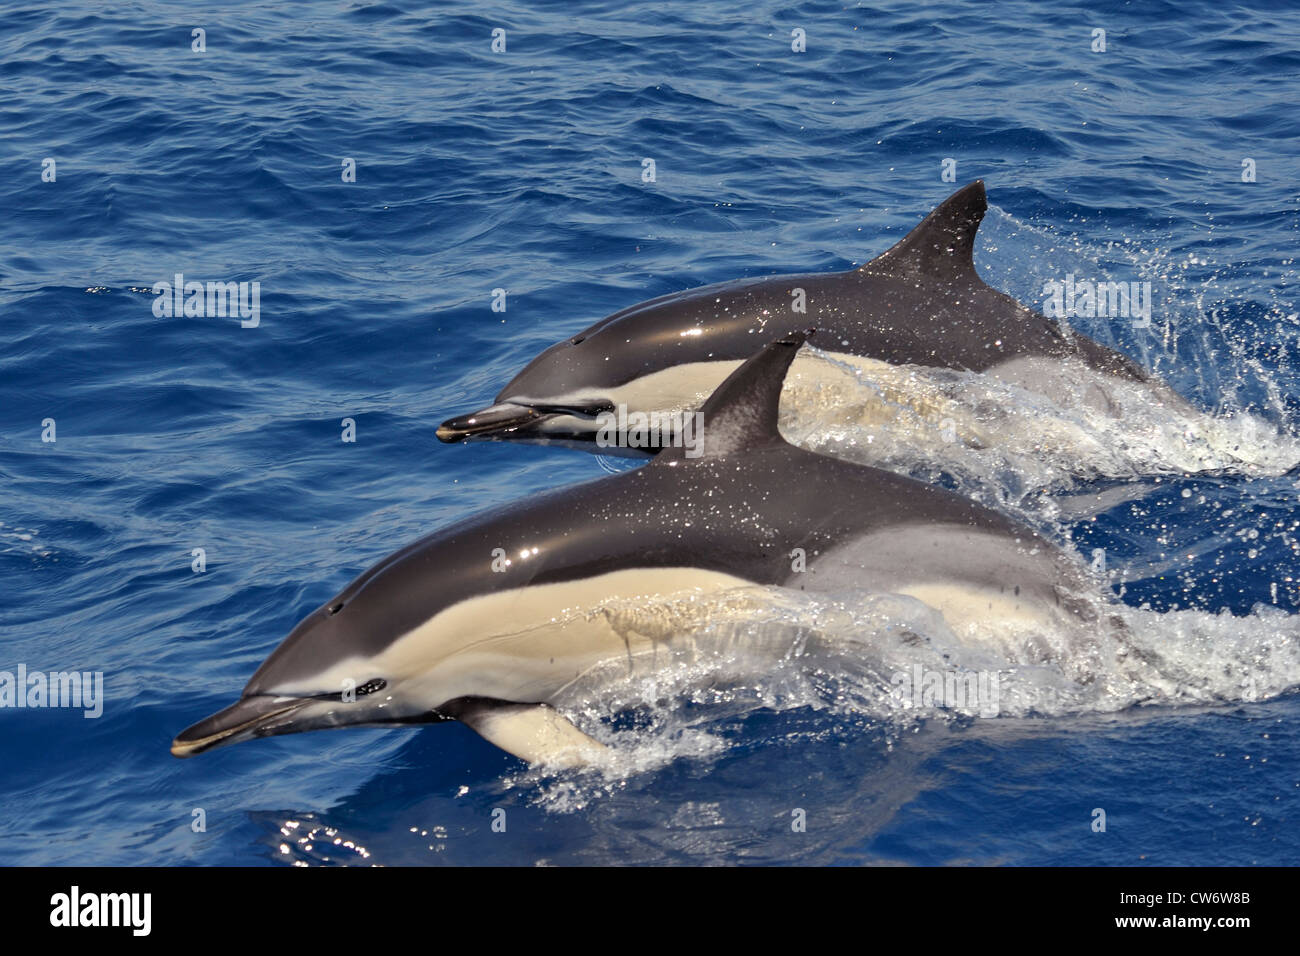 Two Short-beaked Common Dolphins, Delphinus delphis, porpoising together, west of Faial Island, Azores, Atlantic - Stock Image